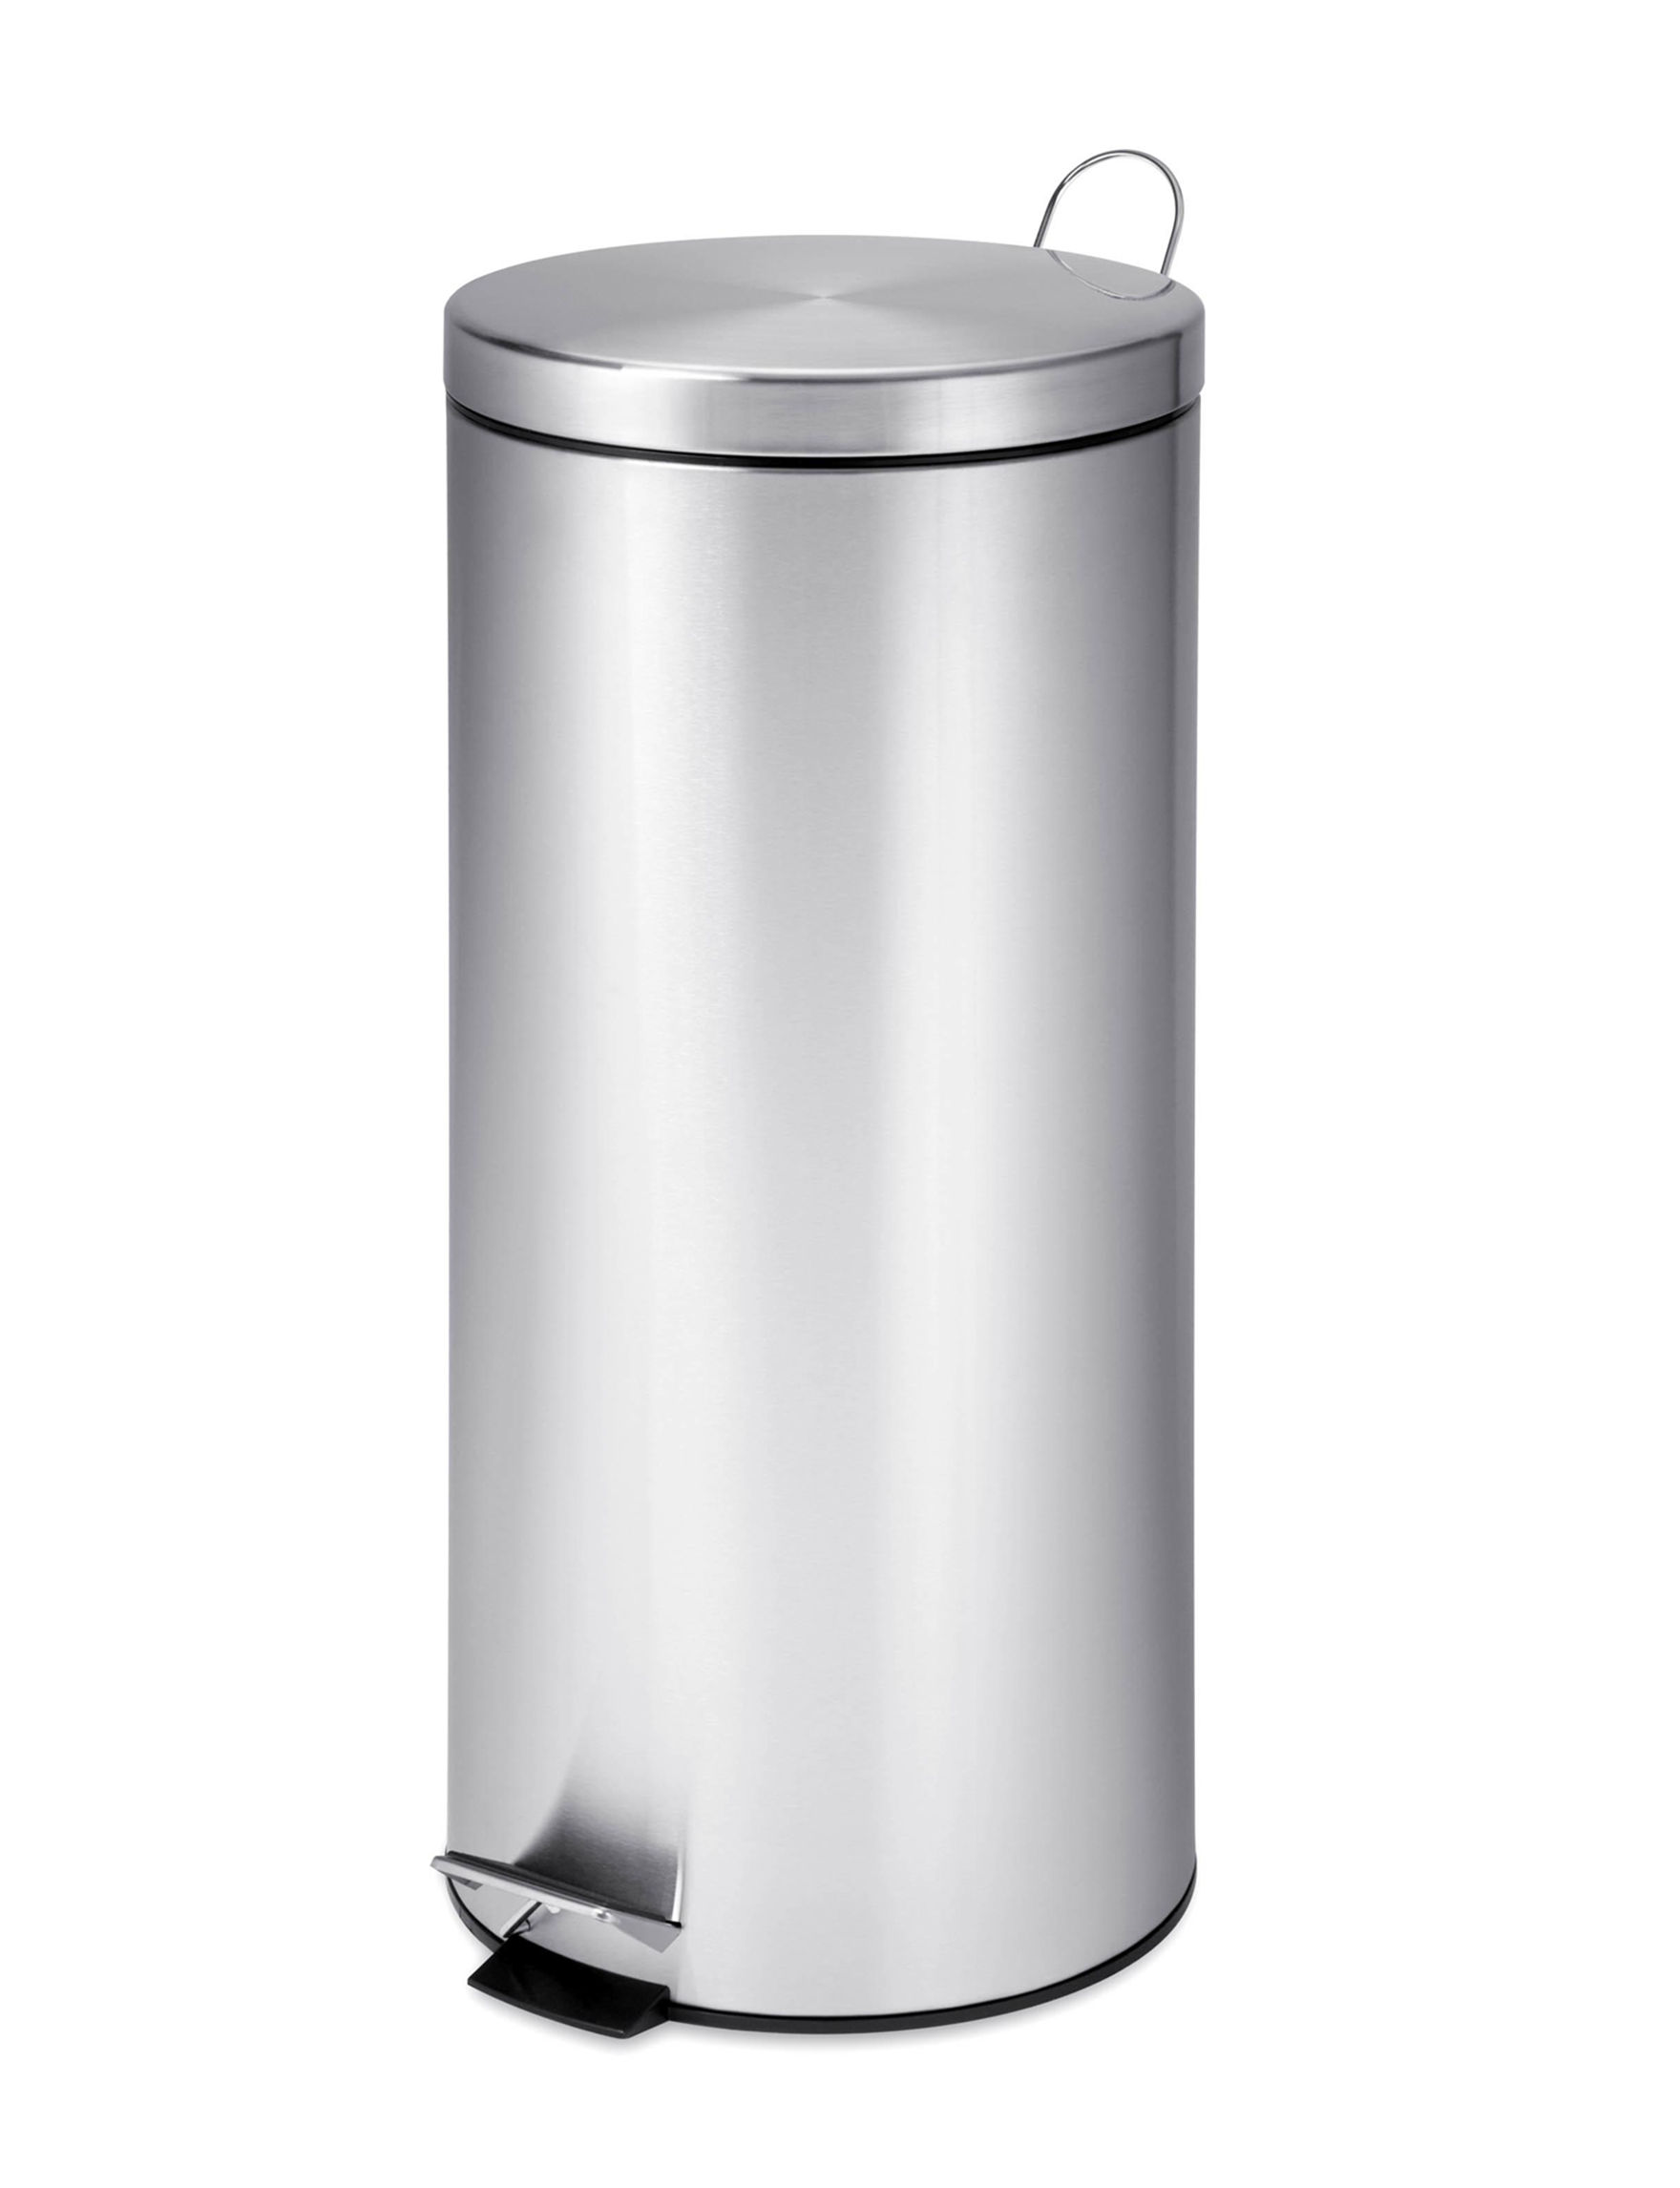 Honey-Can-Do International Grey Trash & Recycling Bins Storage & Organization